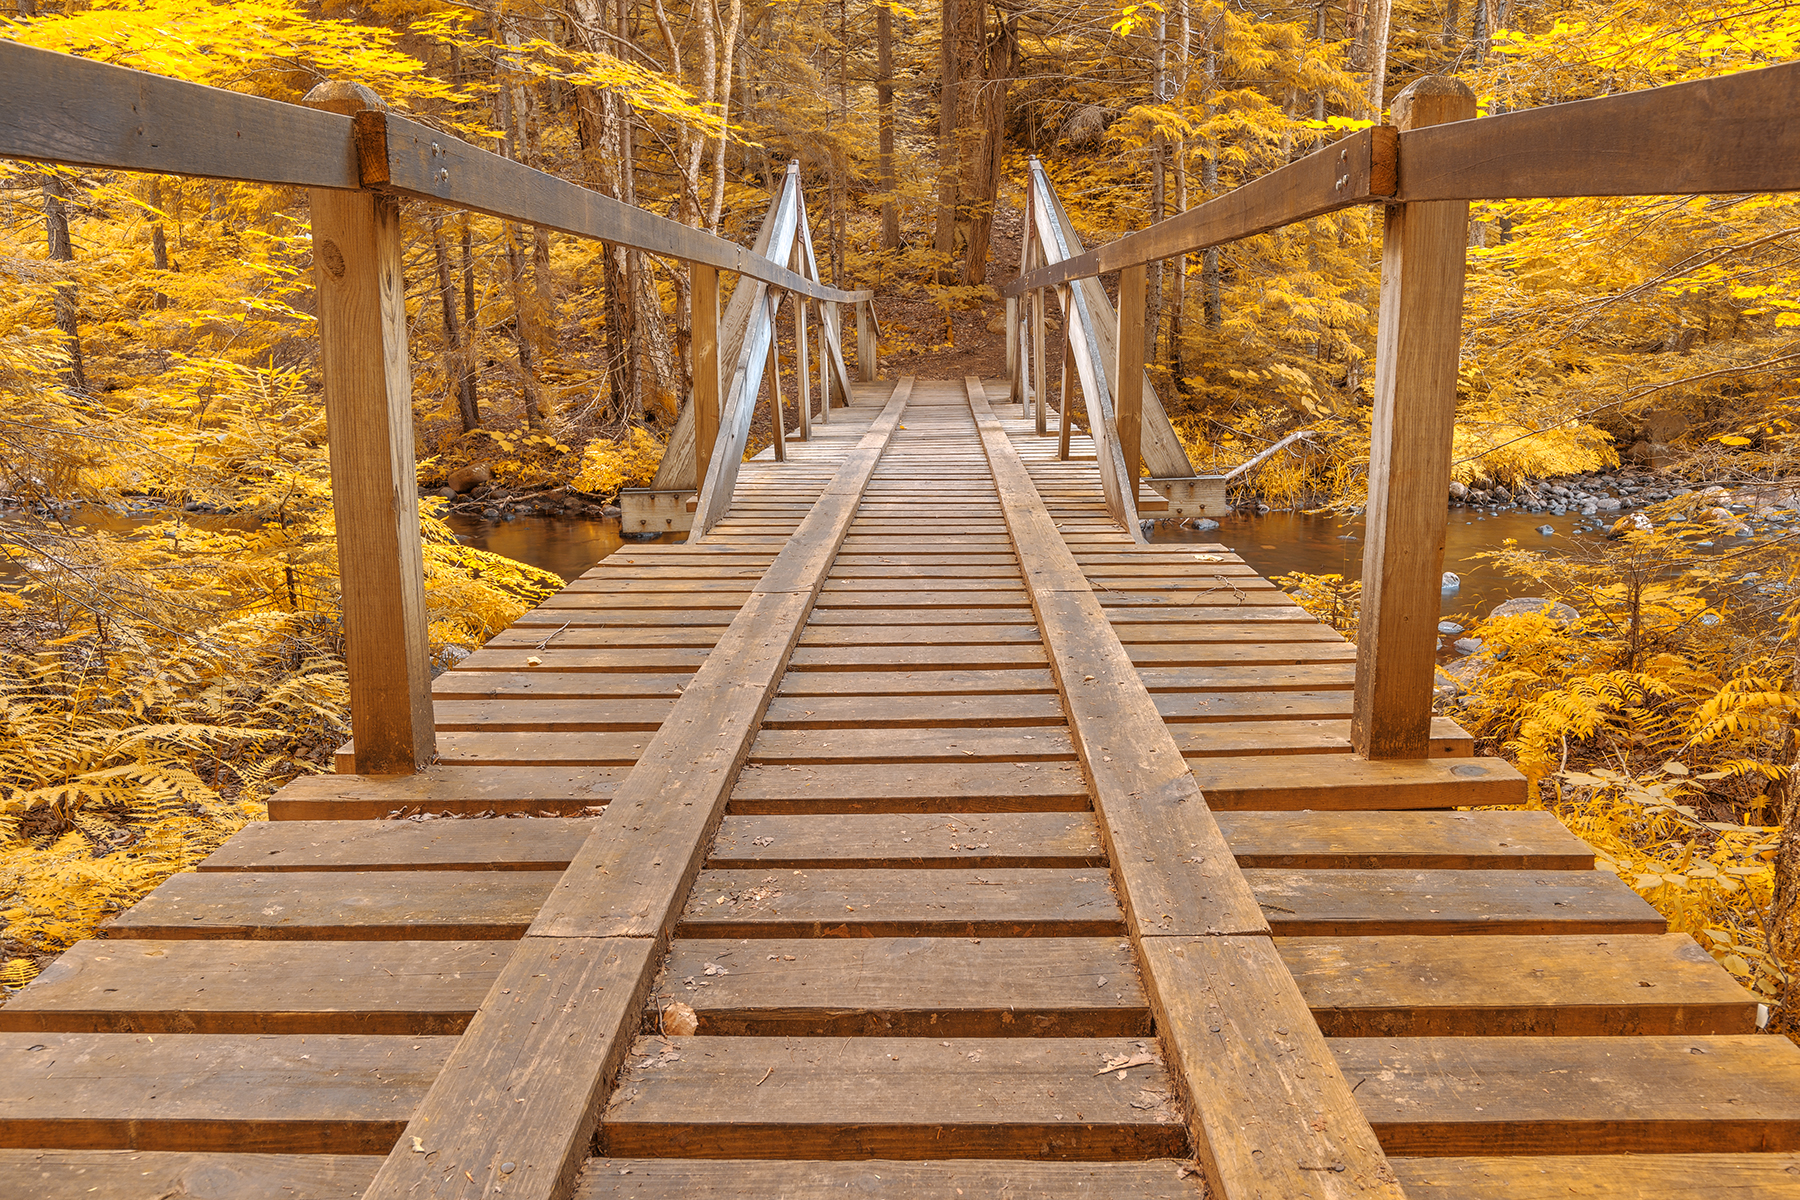 Golden forest track bridge - hdr photo